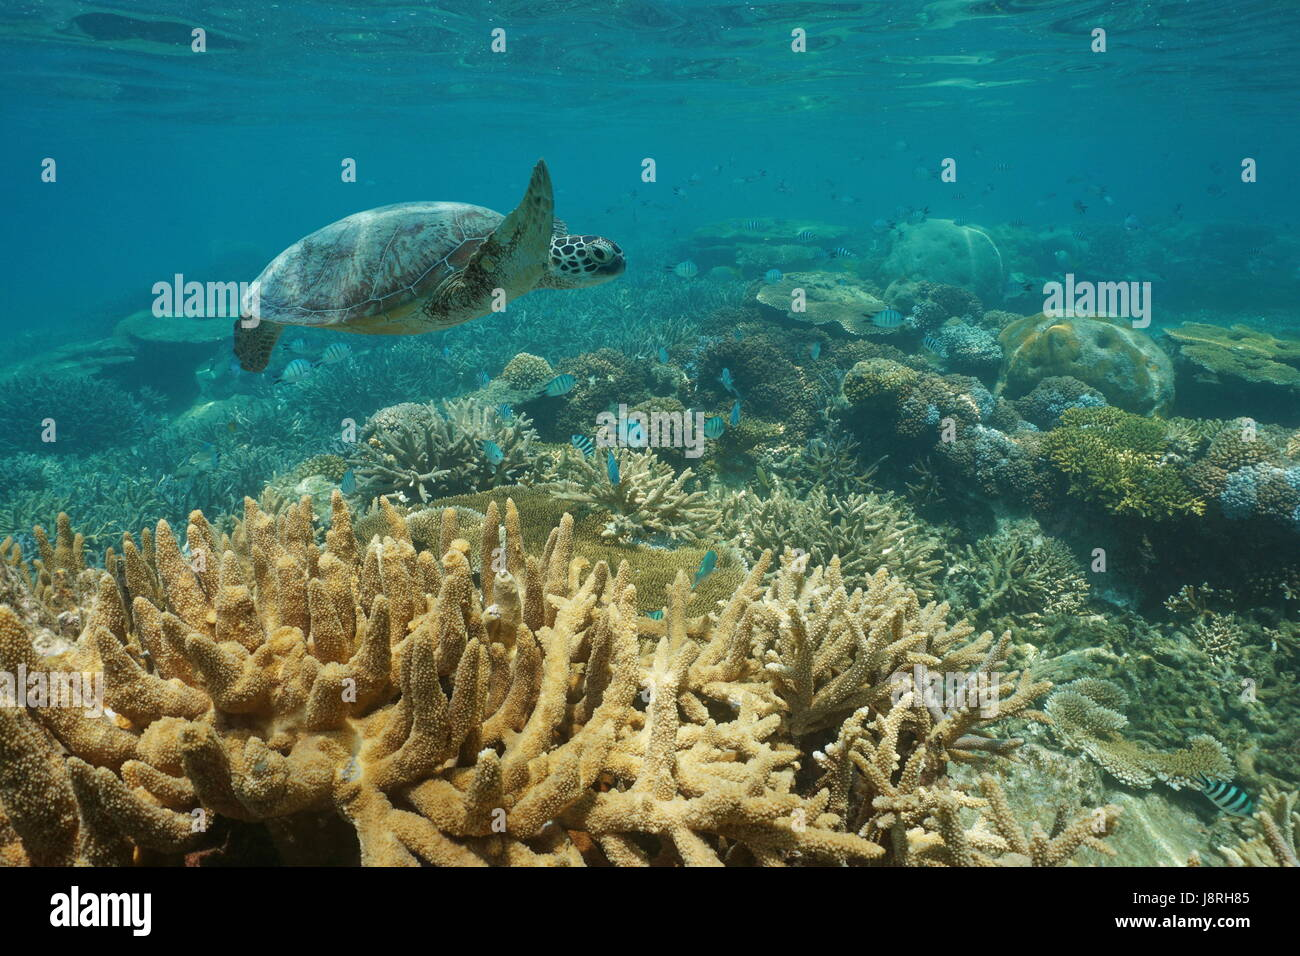 Underwater a green sea turtle swims over an healthy coral reef with fish, New Caledonia, south Pacific ocean - Stock Image